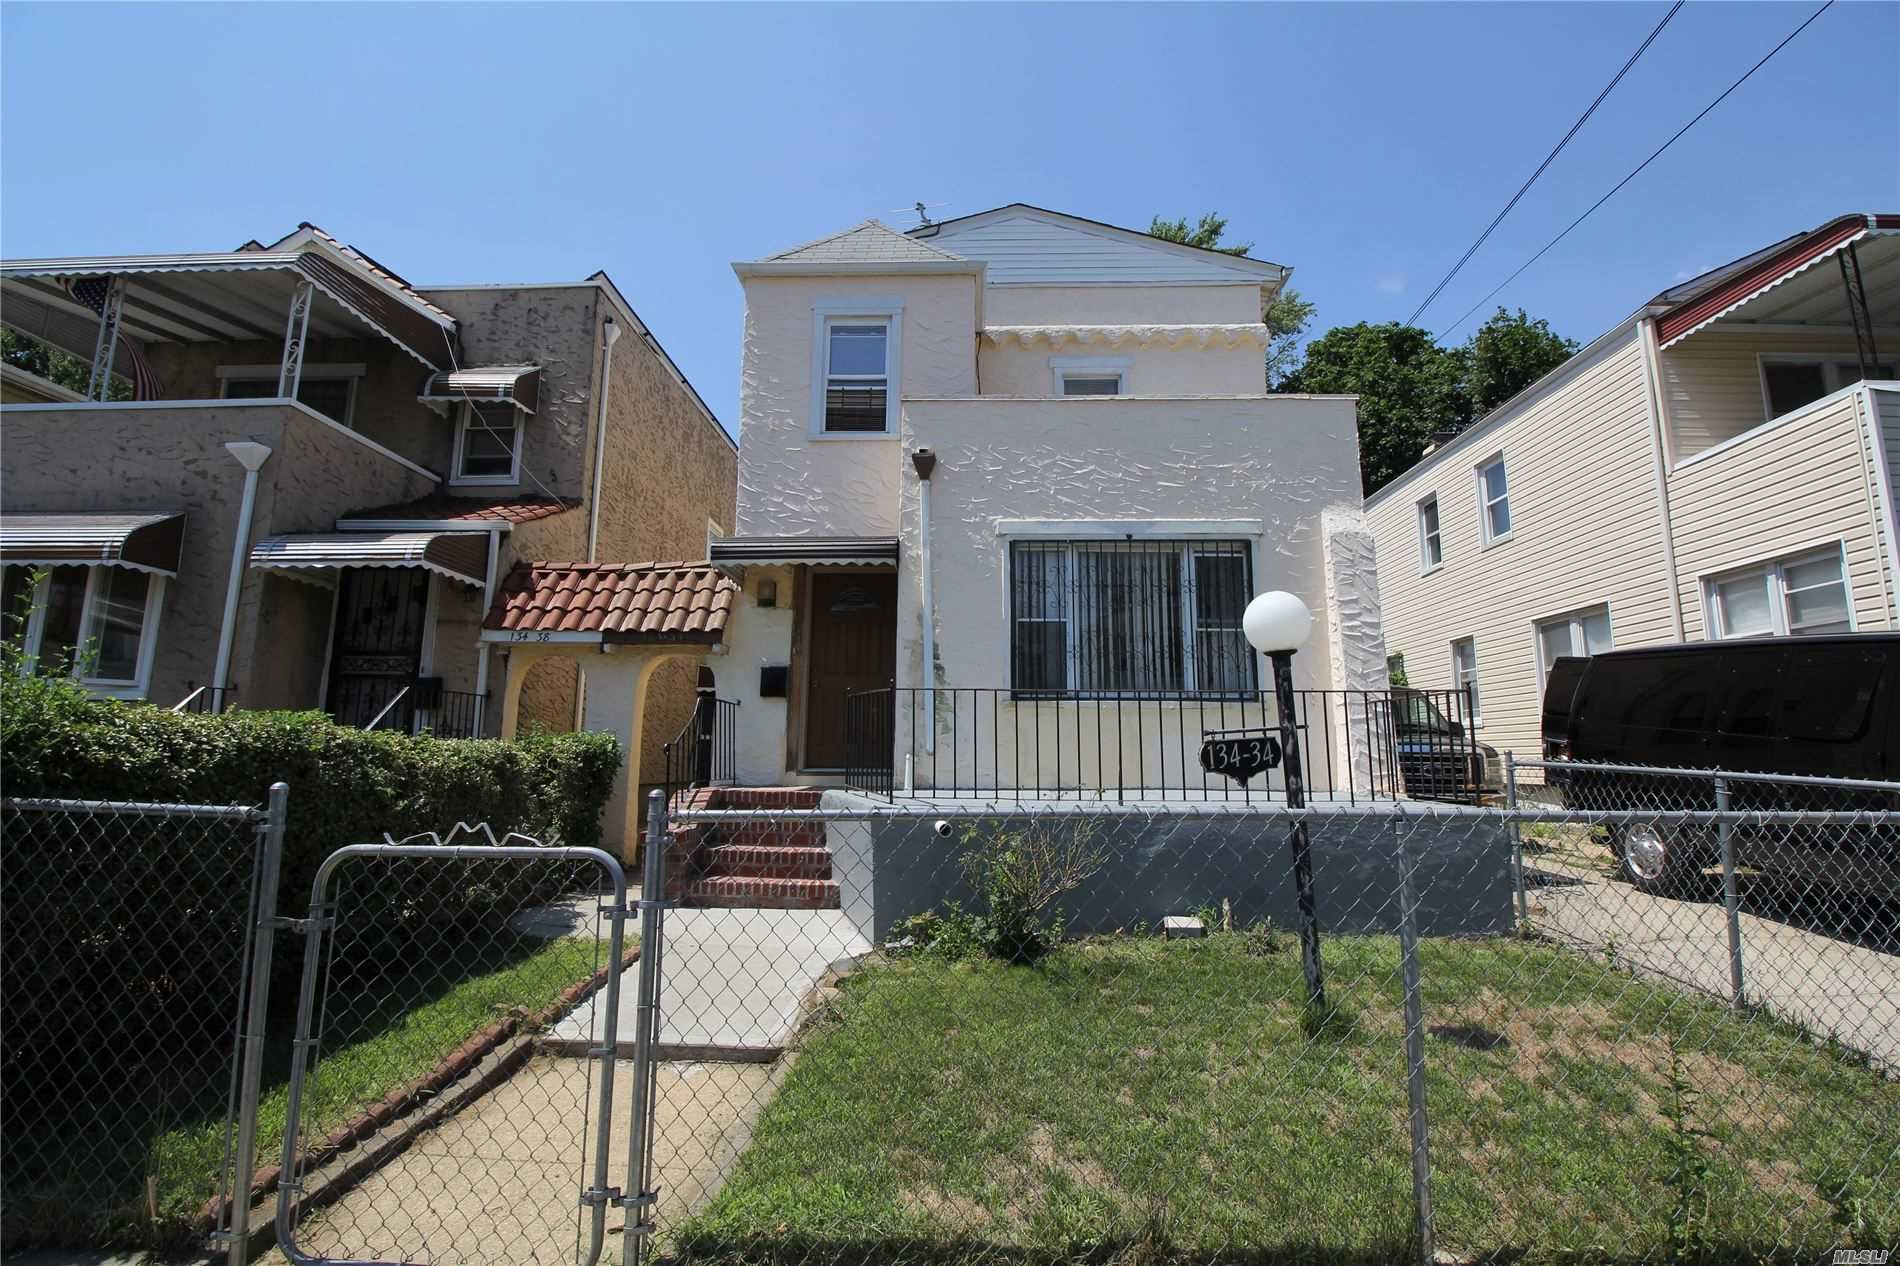 134-34 234th St, Rosedale, NY 11422 - MLS#: 3237569